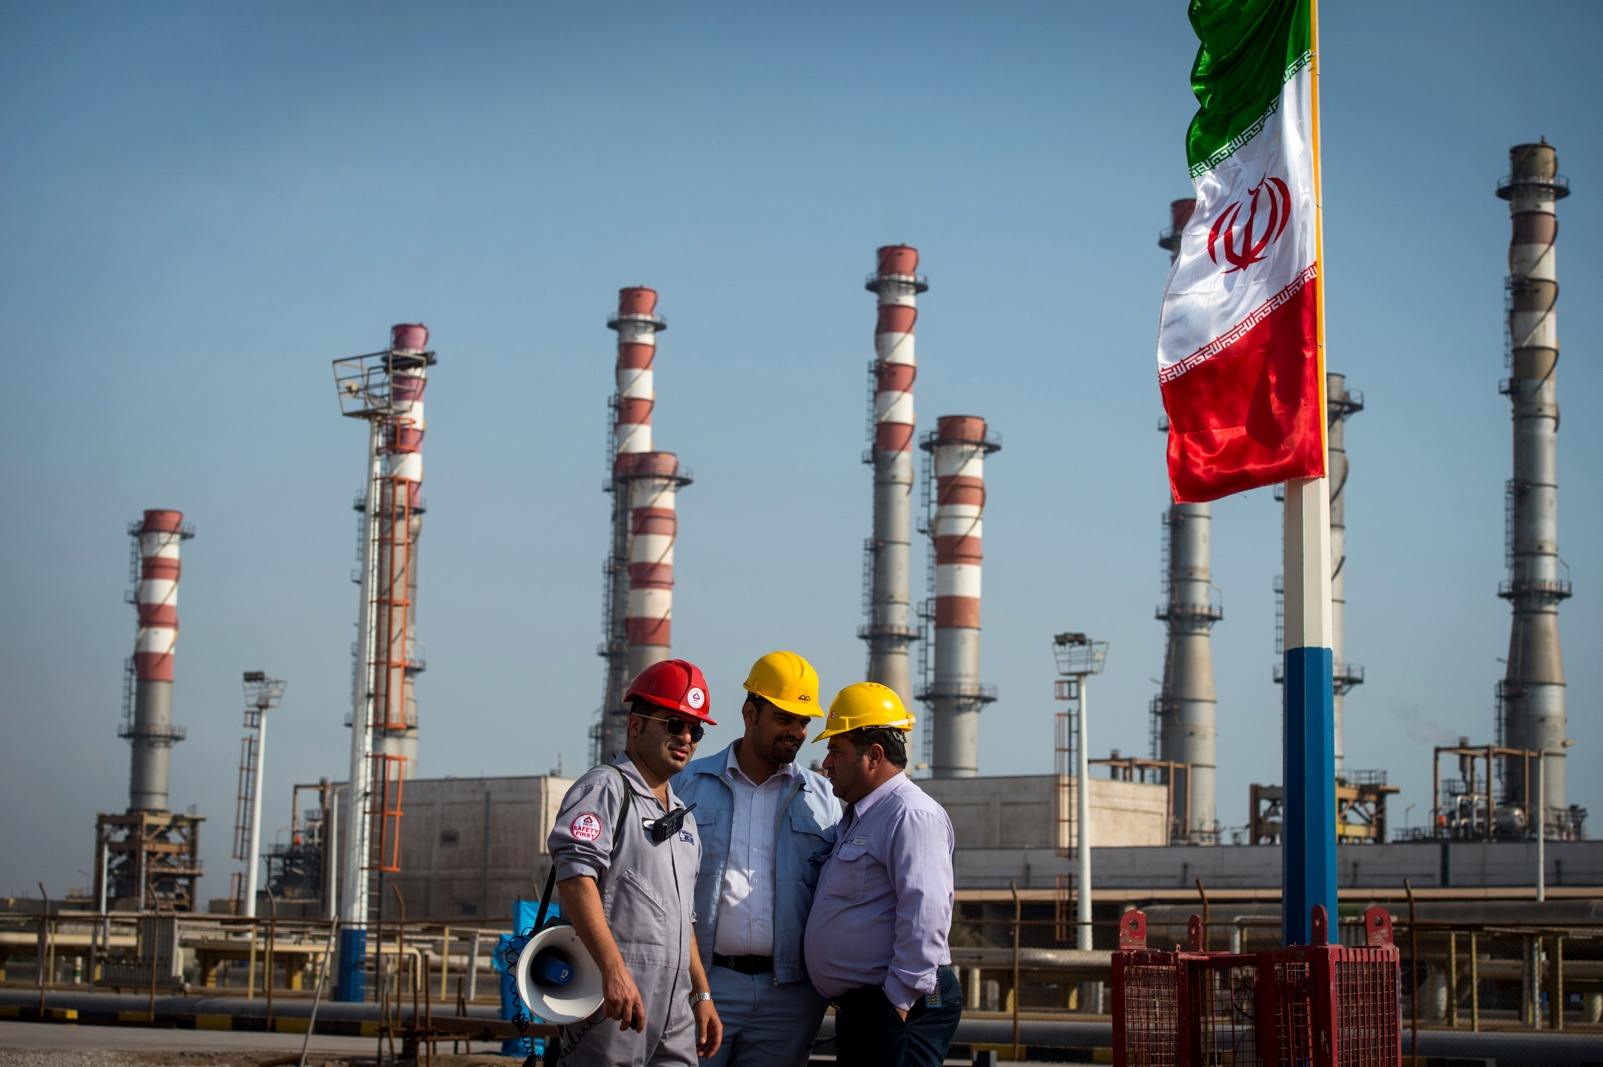 Trade under sanctions: Iran manages to increase exports of petroleum products